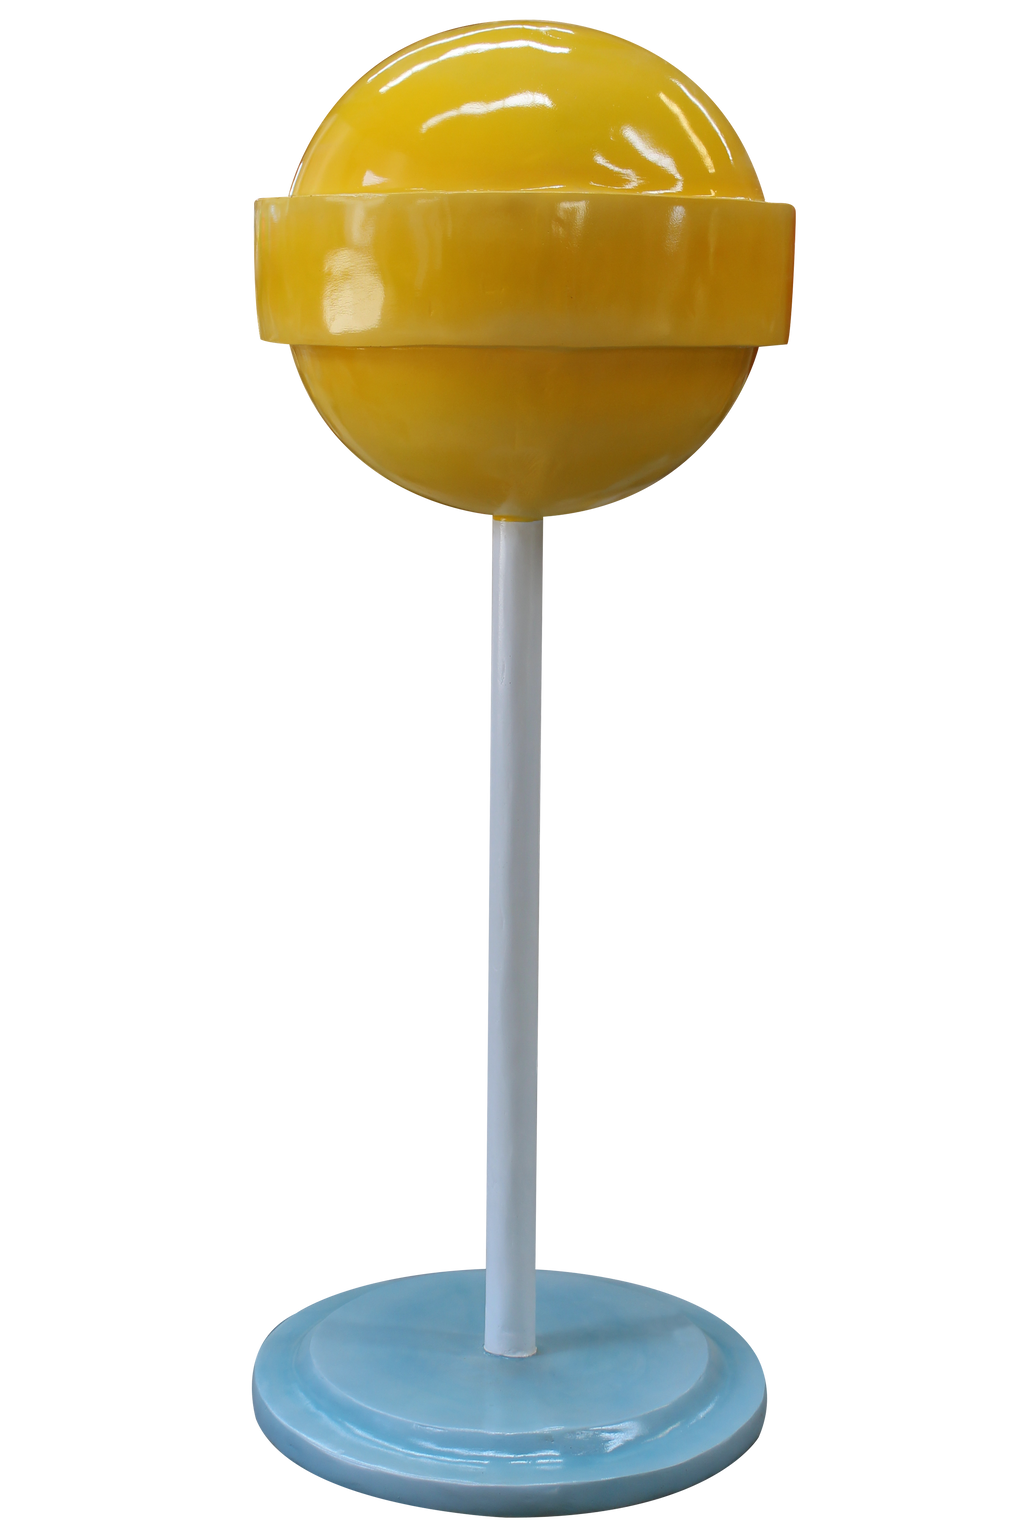 Candy Mini Lollipop Sugar Pop Yellow Over sized Display Resin Prop Decor Statue - LM Treasures Prop Rentals